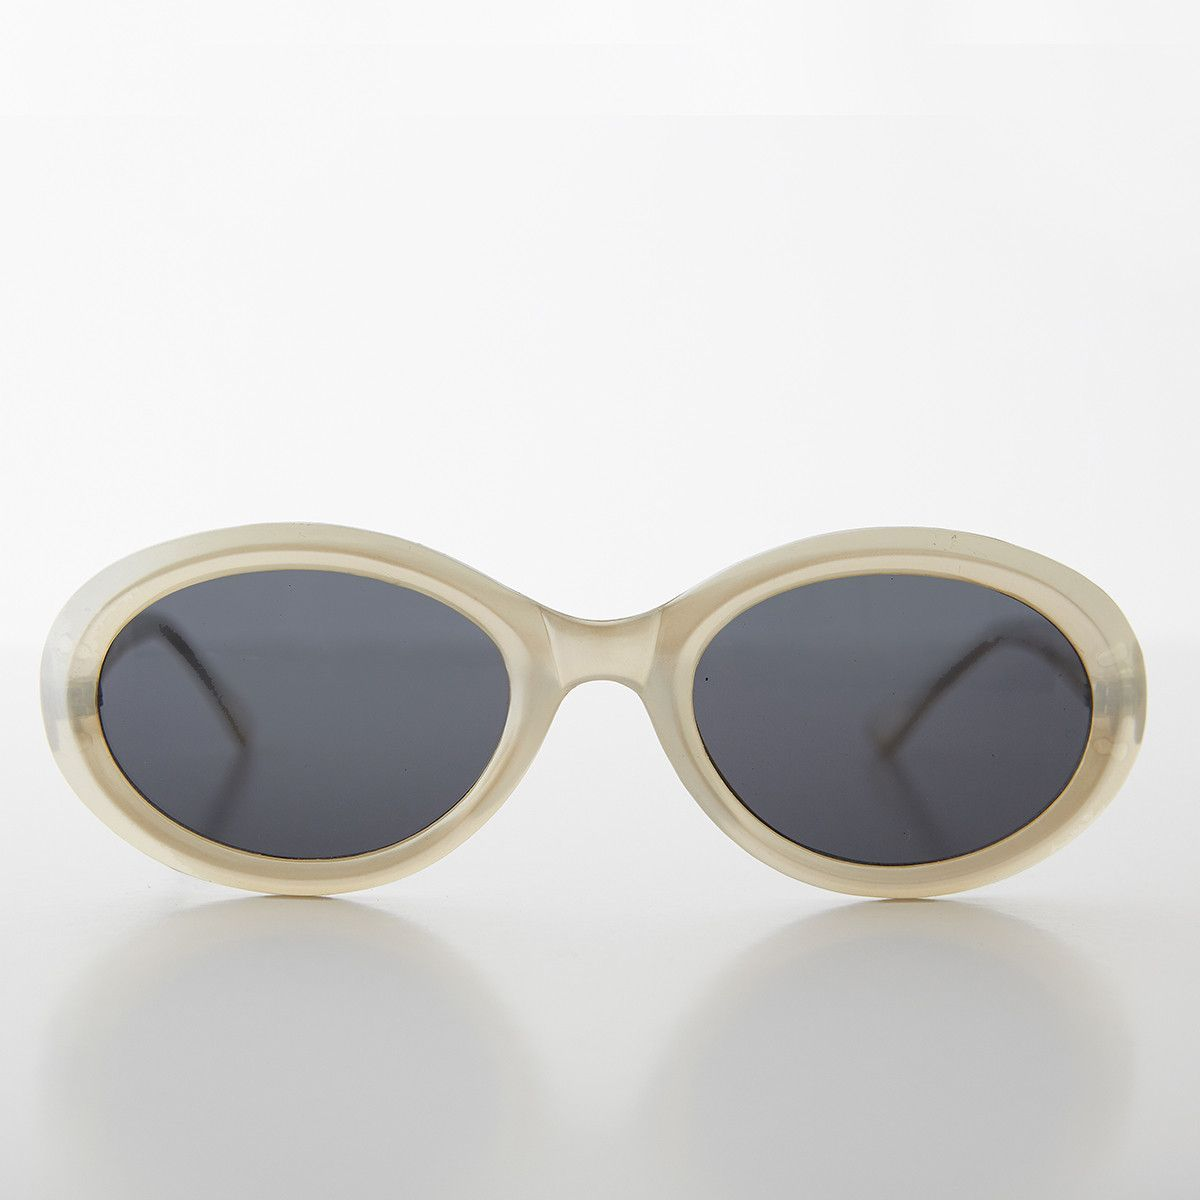 90s Kurt Cobain Oval Cat Eye Vintage